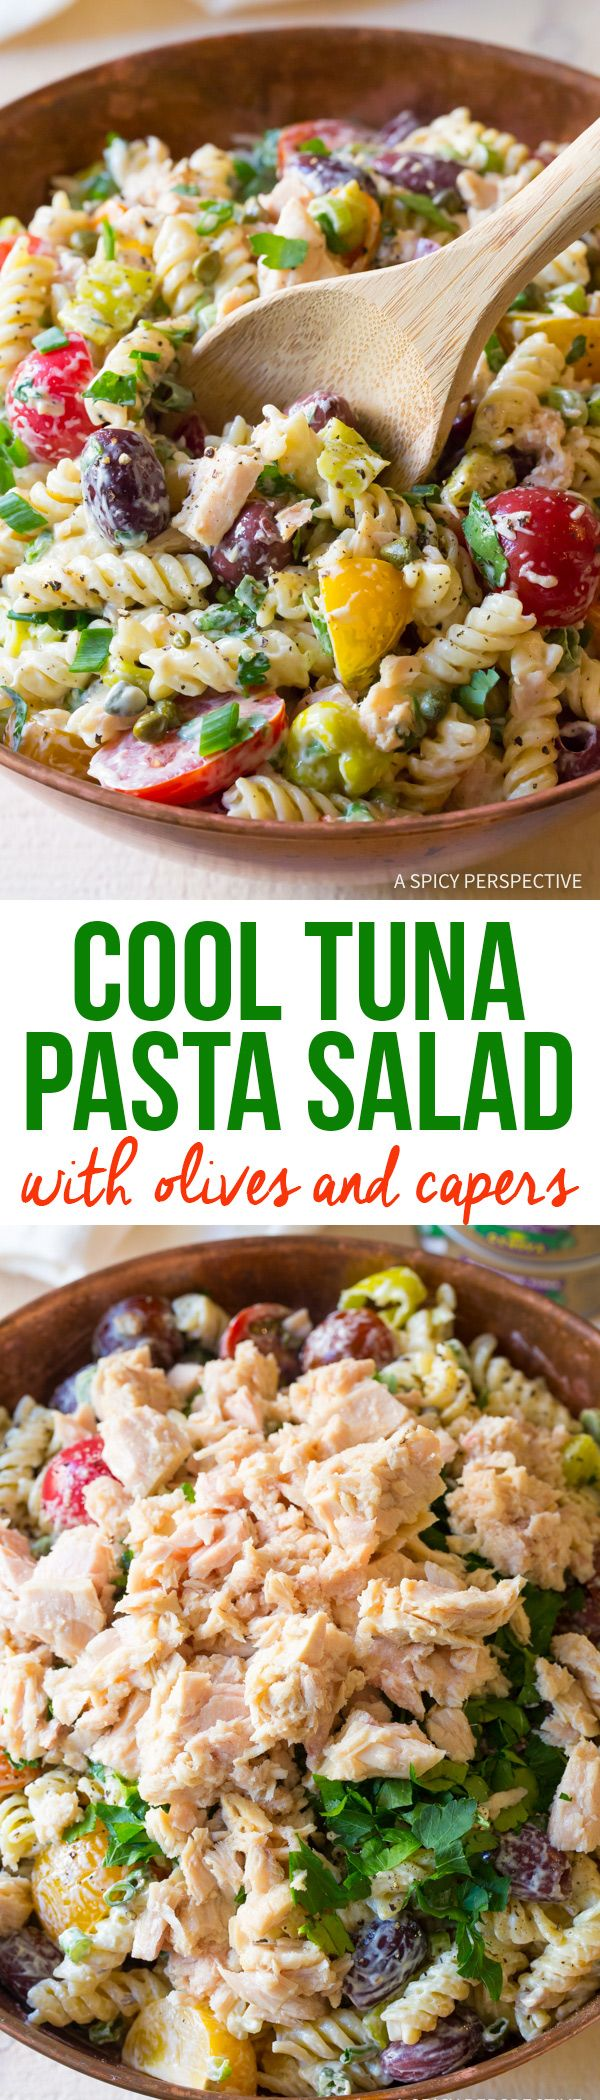 Cold Tuna Pasta Salad with Olives and Capers Recipe via @spicyperspectiv